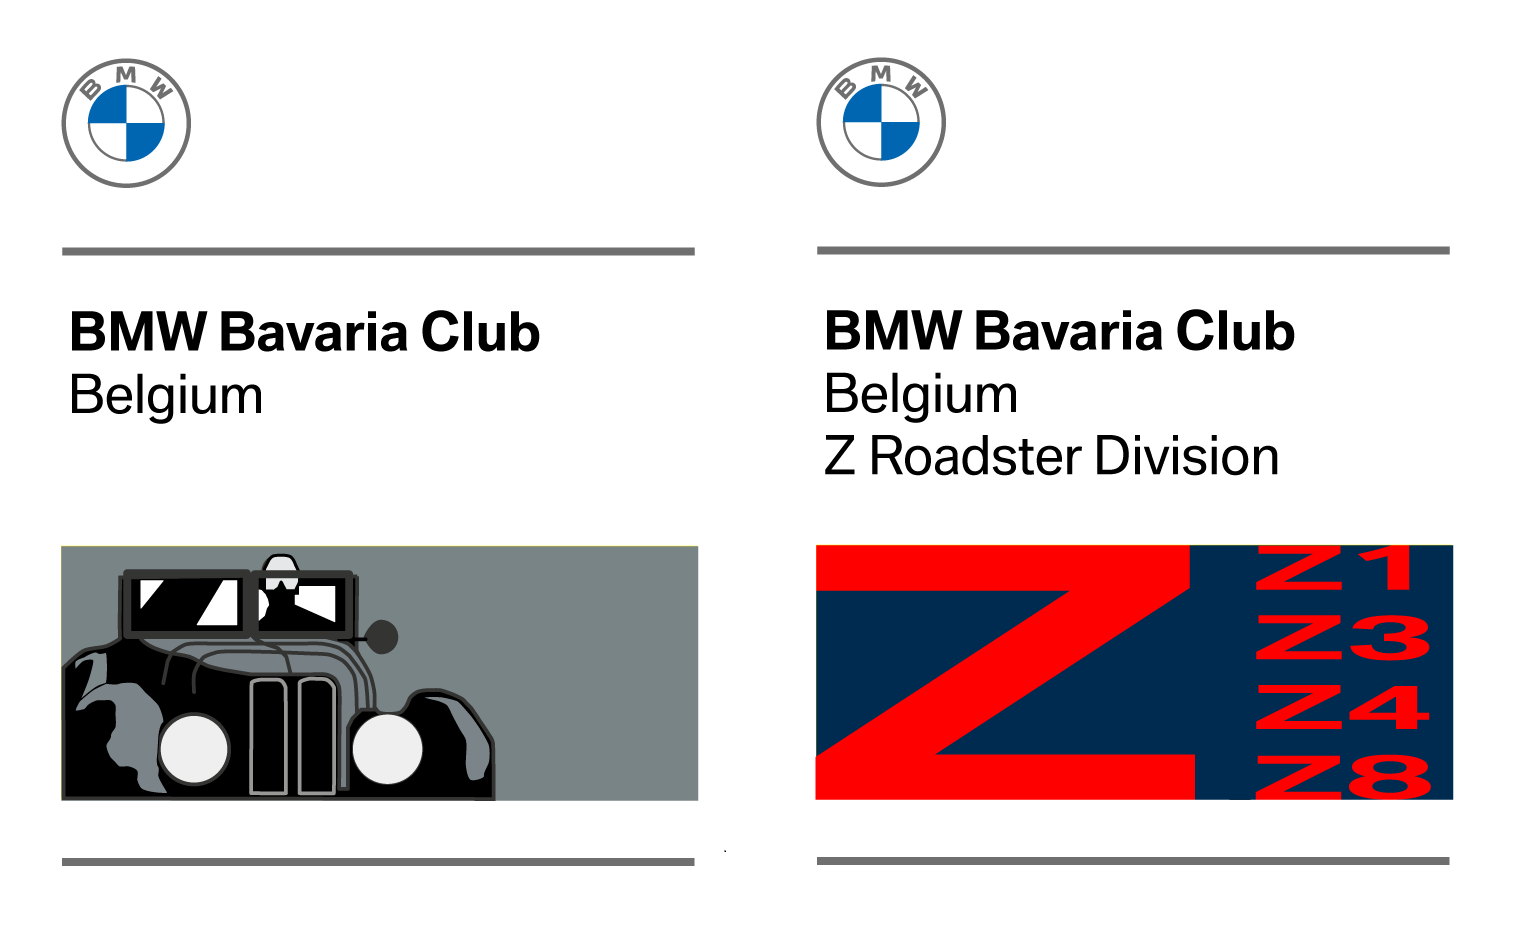 BMW Bavaria Club